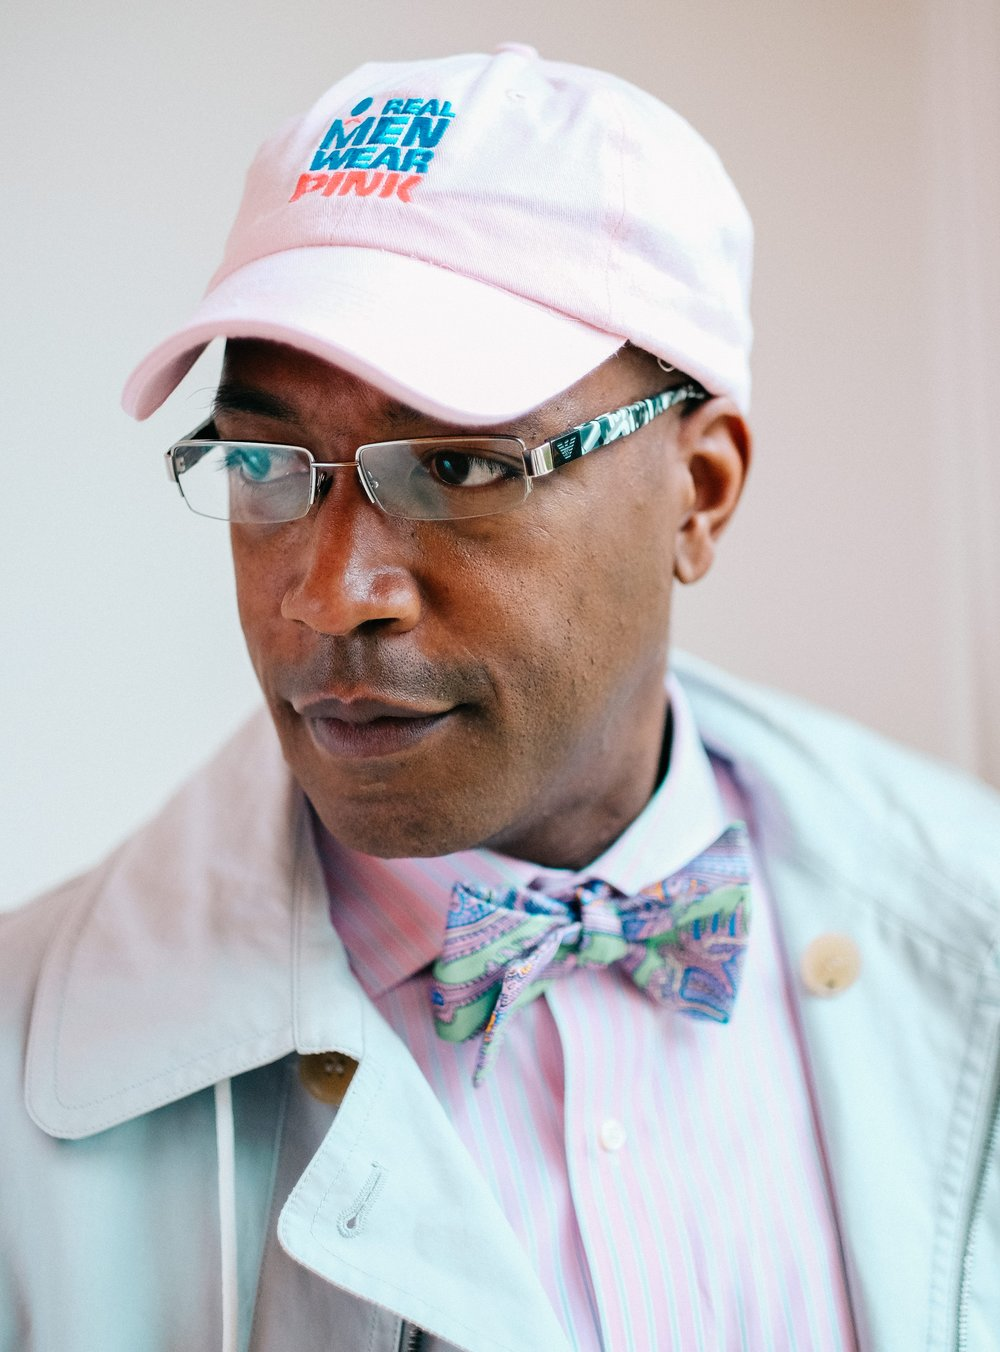 real men wear pink campaign hat